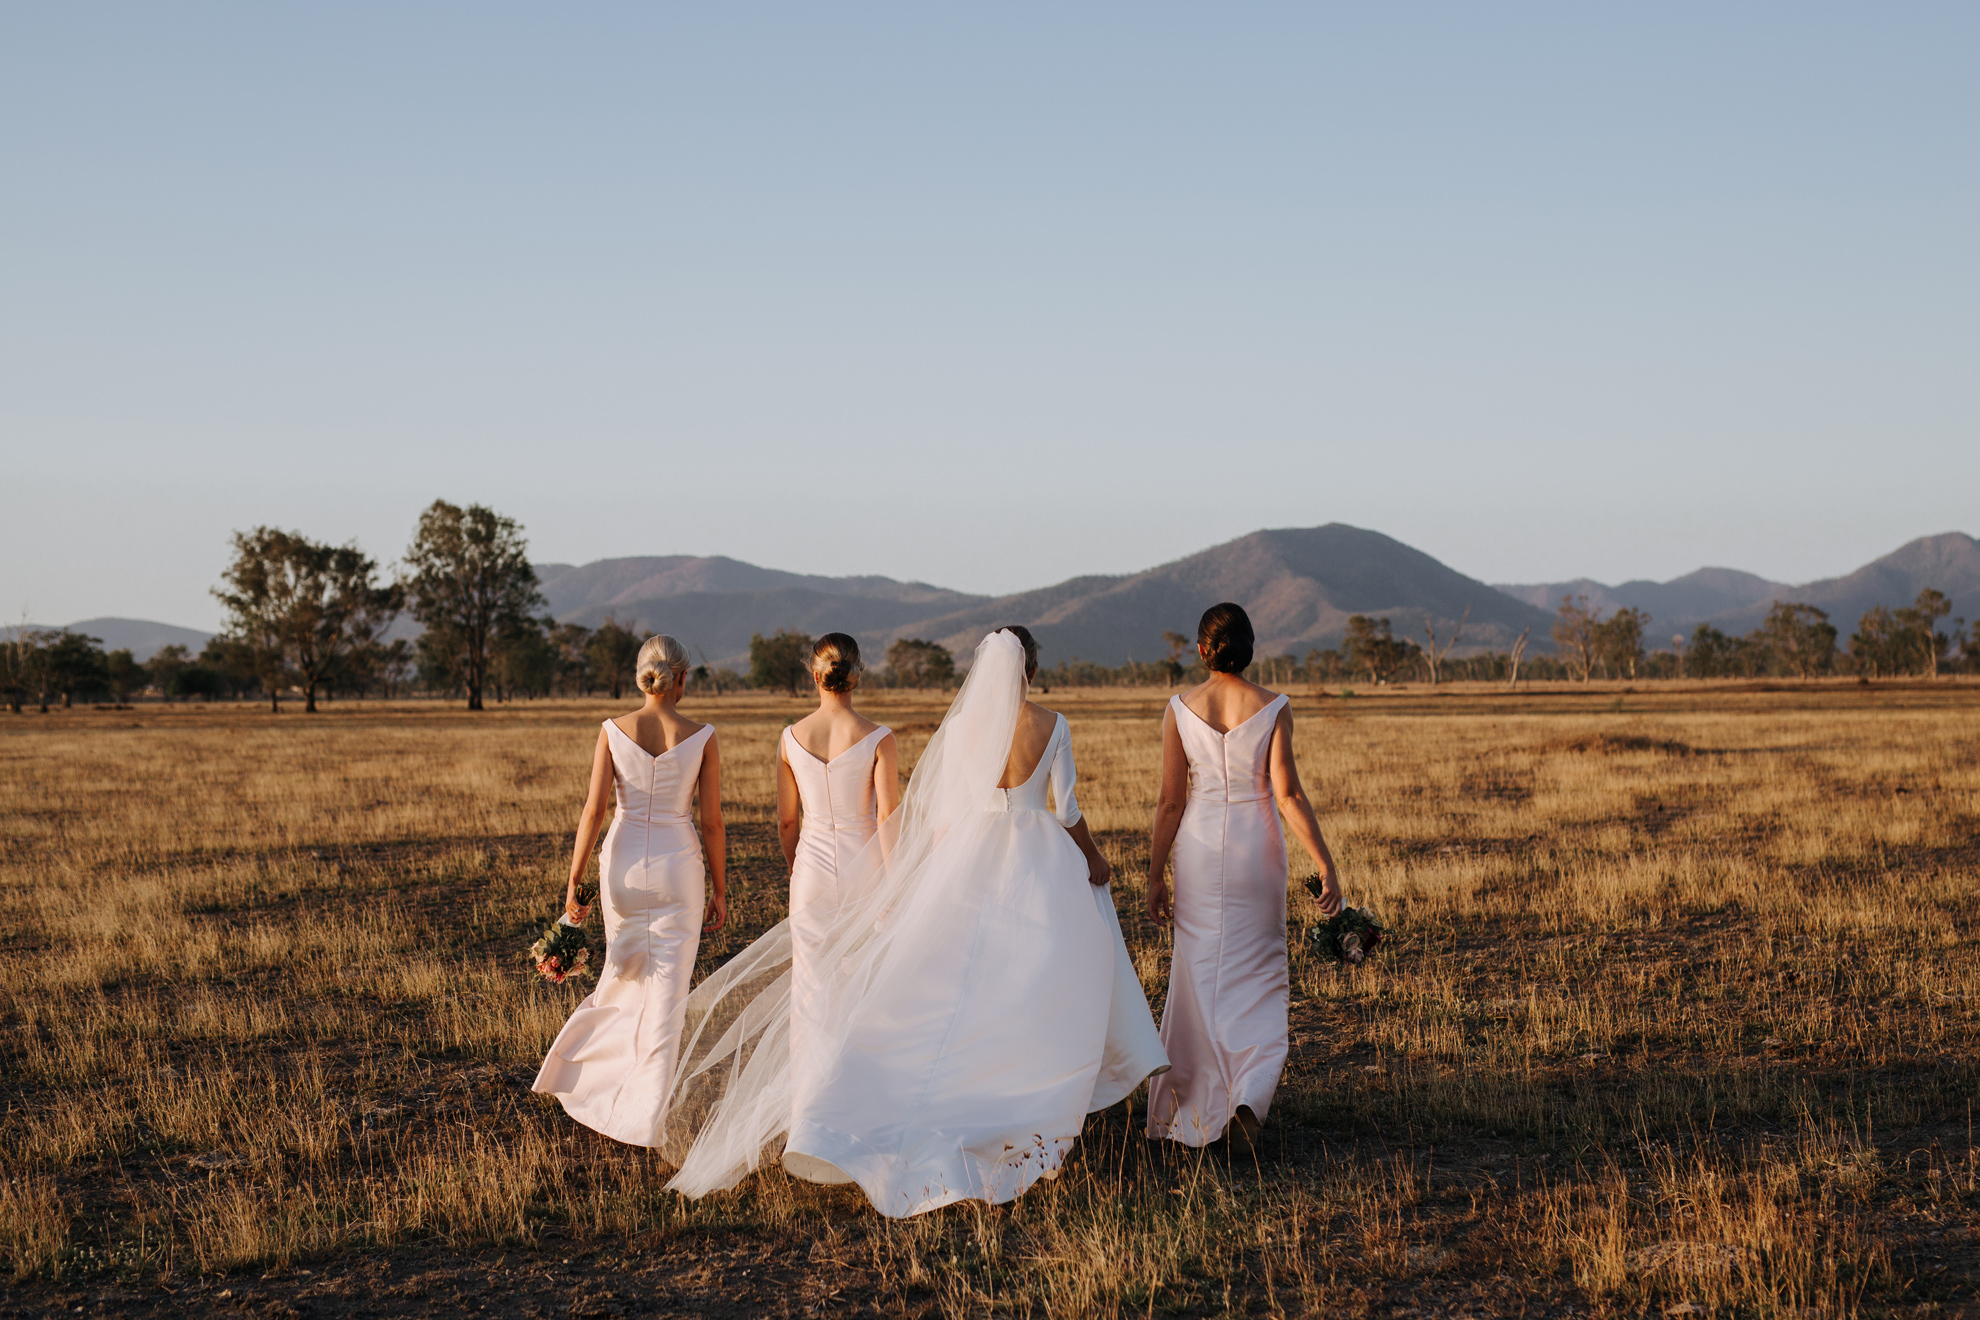 056-Chloe_Joe_Rockhampton_Wedding.jpg